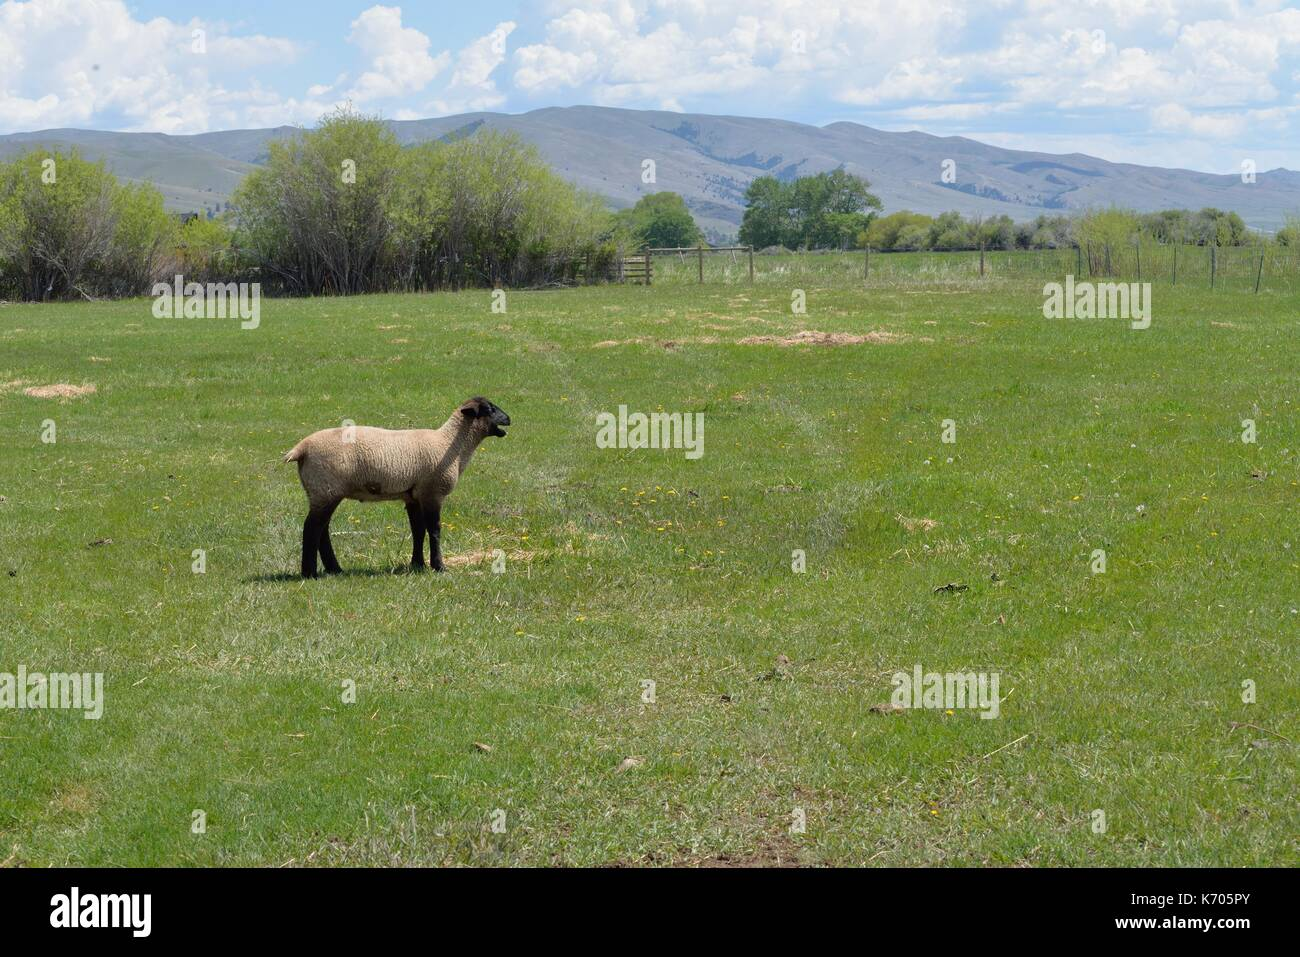 Young sheep bleats to find the herd. - Stock Image